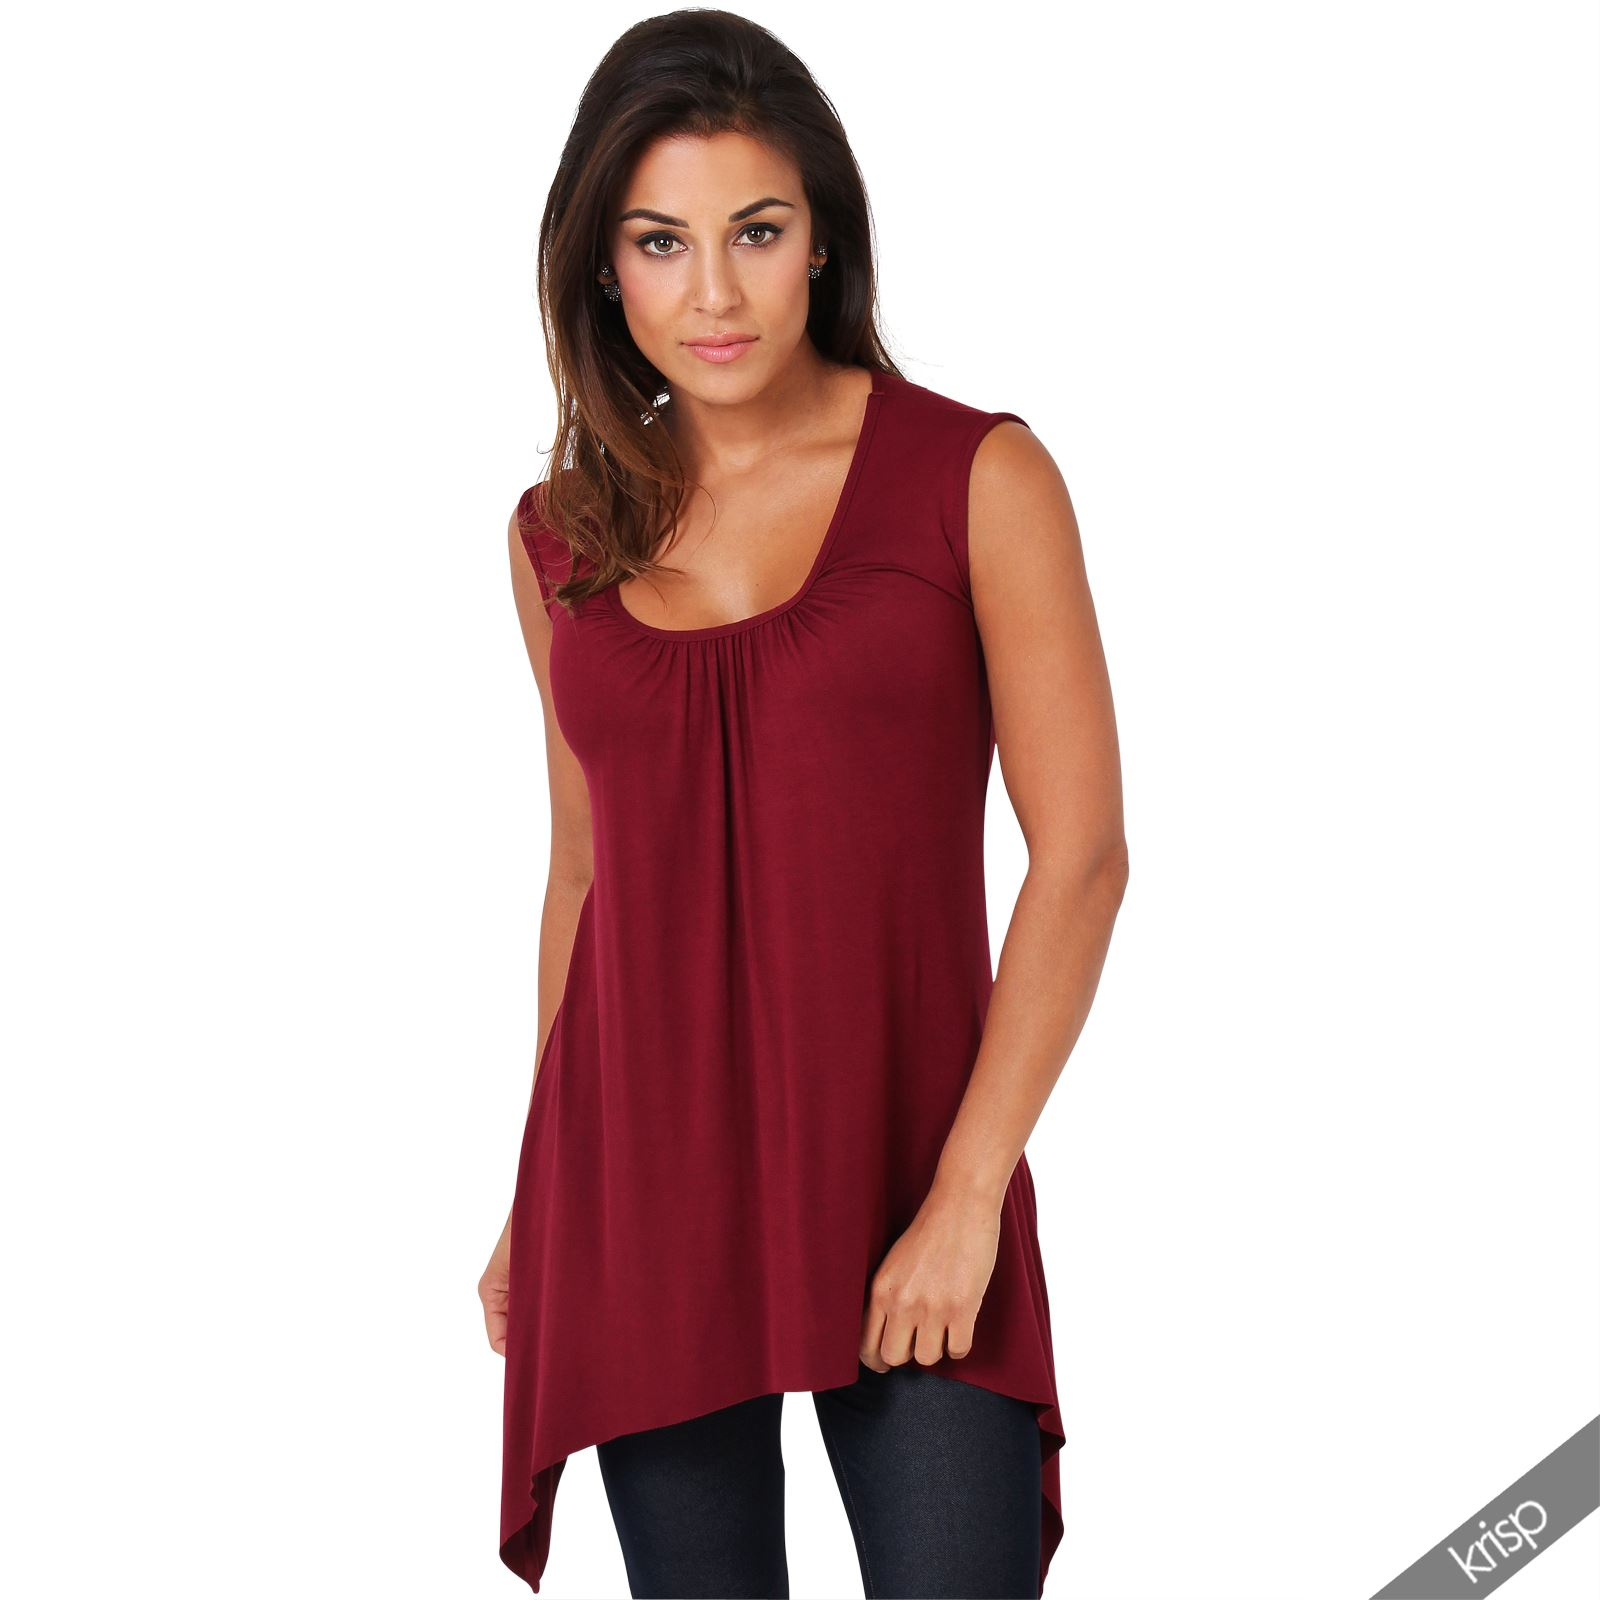 Women-Long-Top-Sleeveless-Pleated-Tee-Shirt-Tunic-Jersey-Stretch-Loose-Fit thumbnail 34